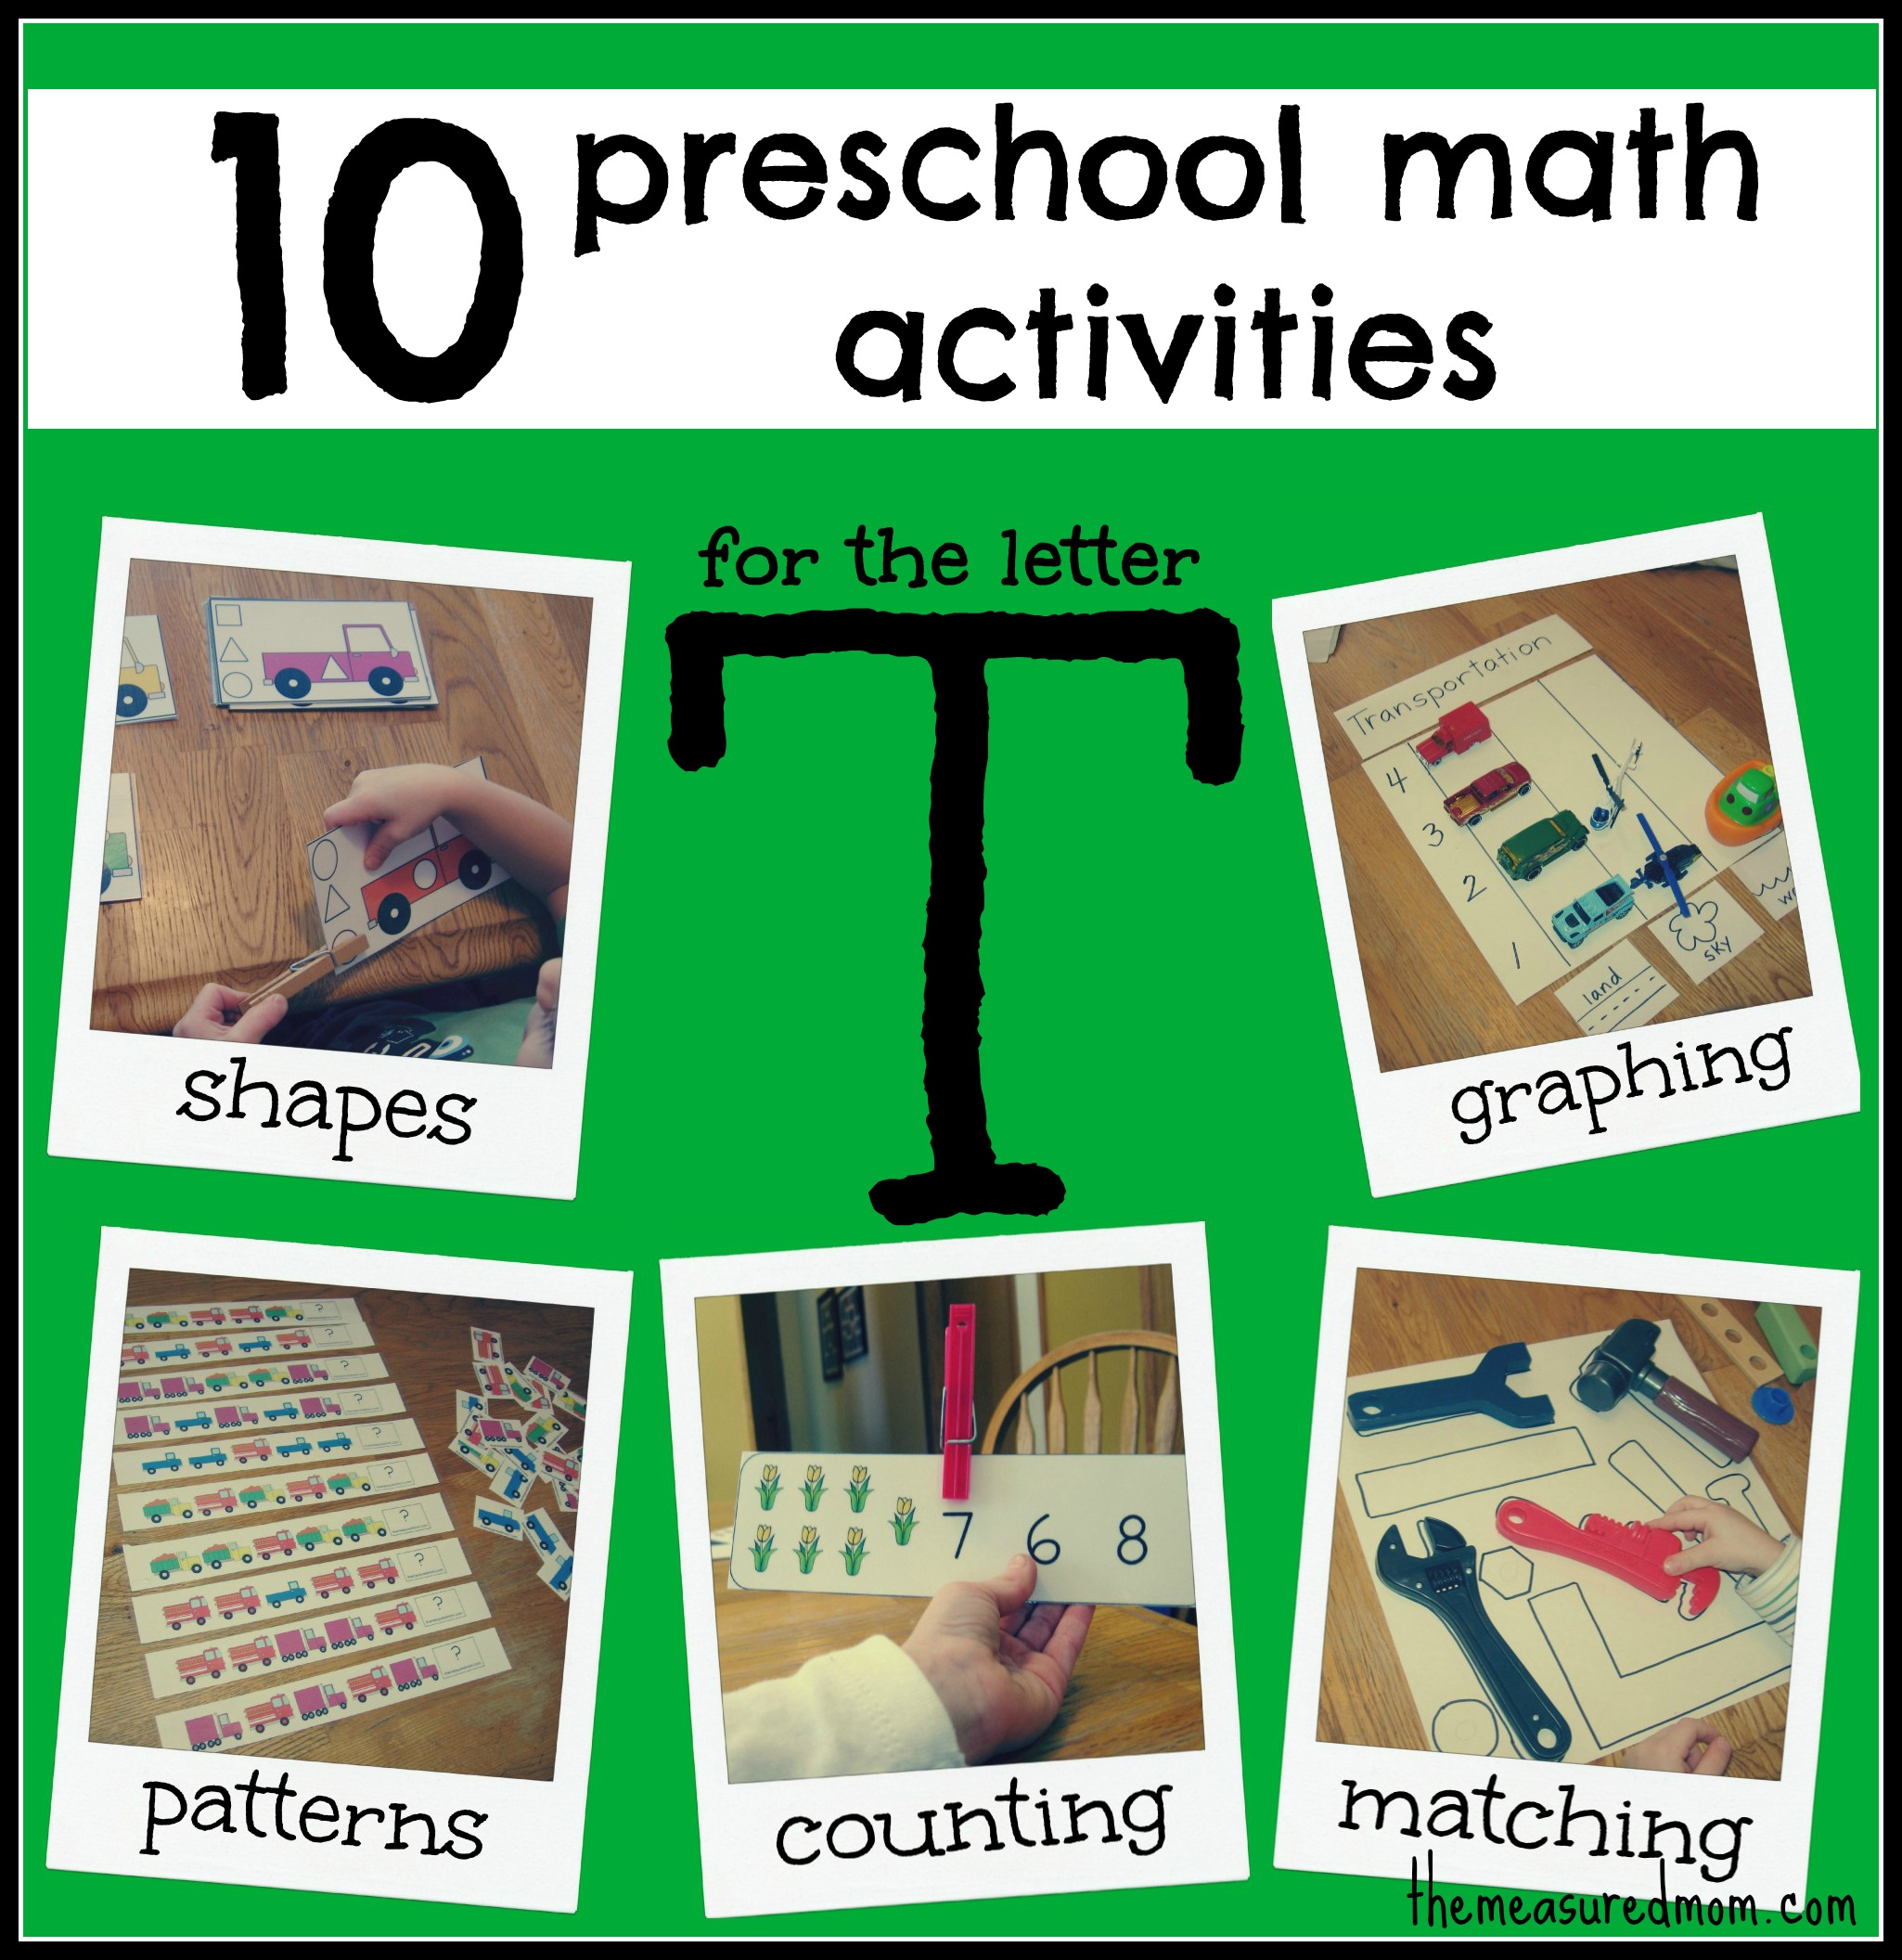 To try in this set of 10 preschool math activities for the letter t